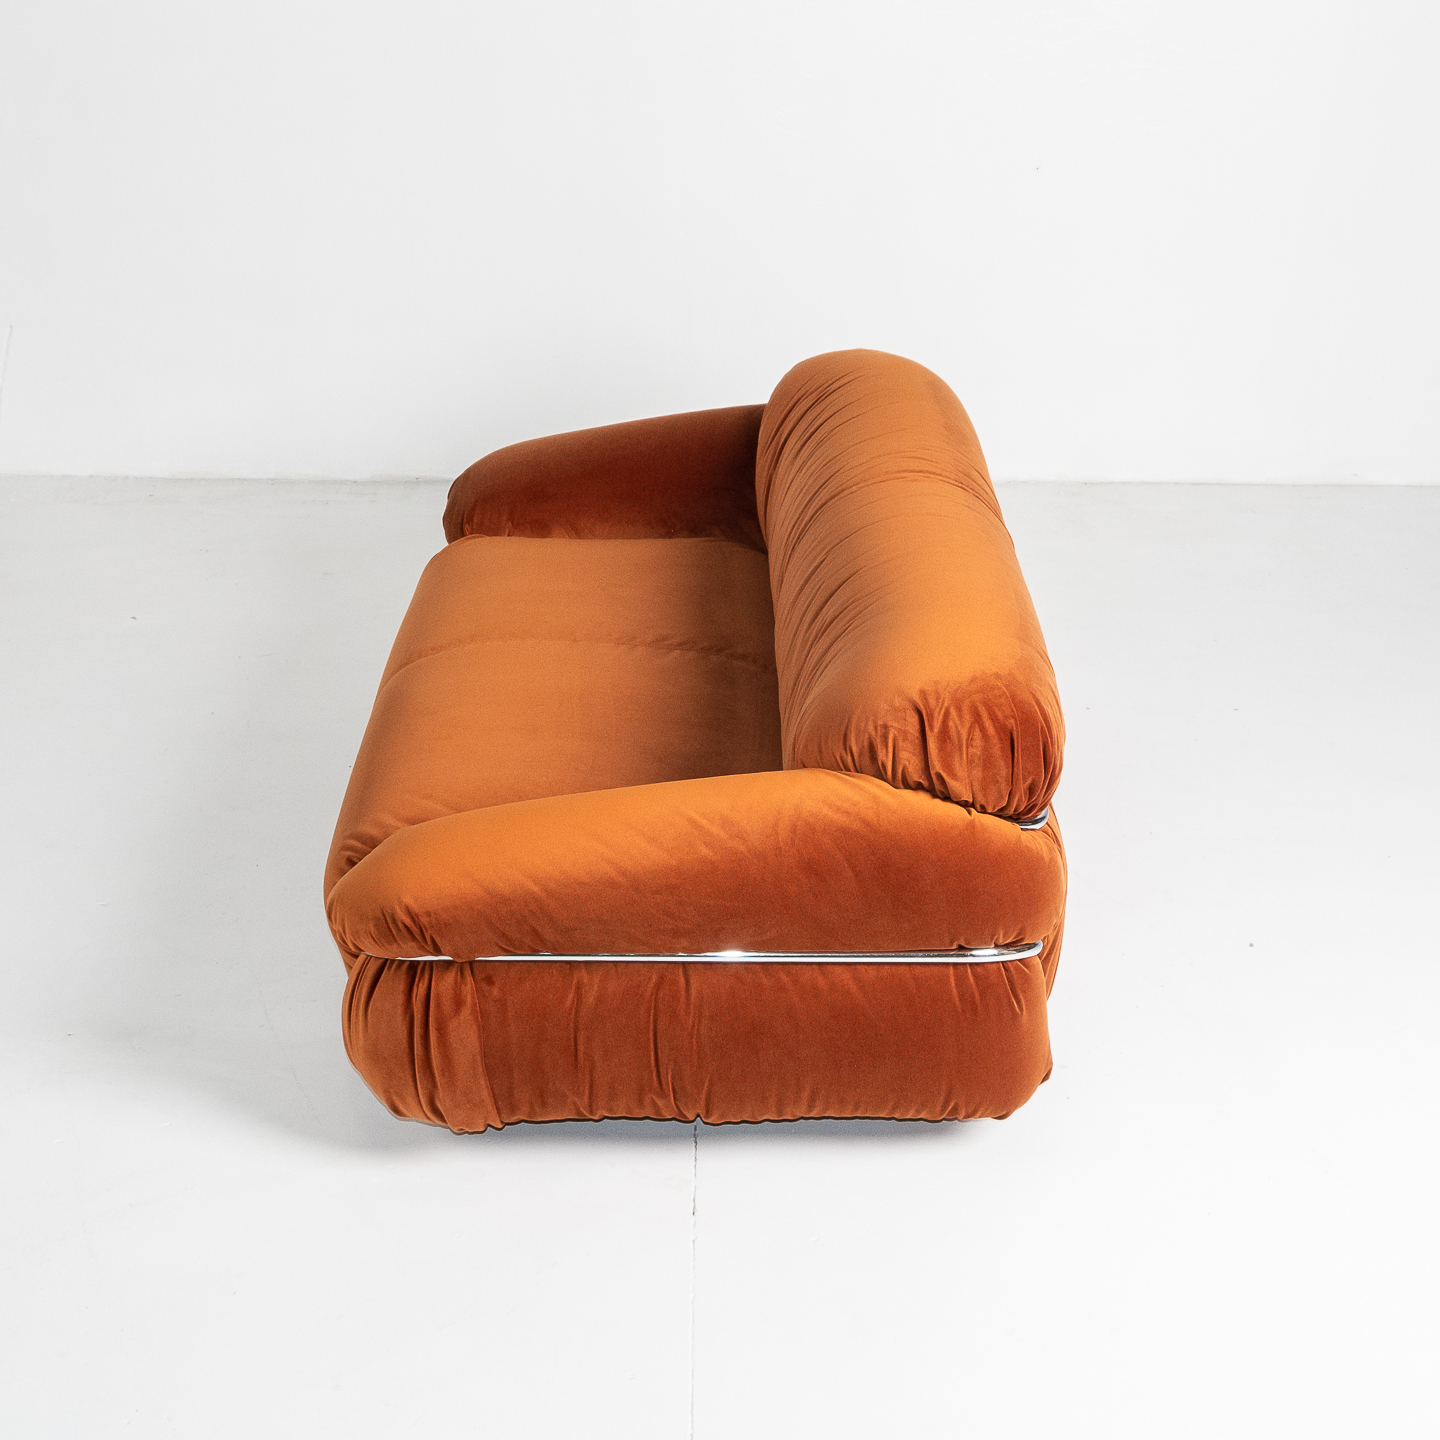 Model 595 Sesann Sofa By Gianfranco Frattini For Cassina, 1970s, Italy 198